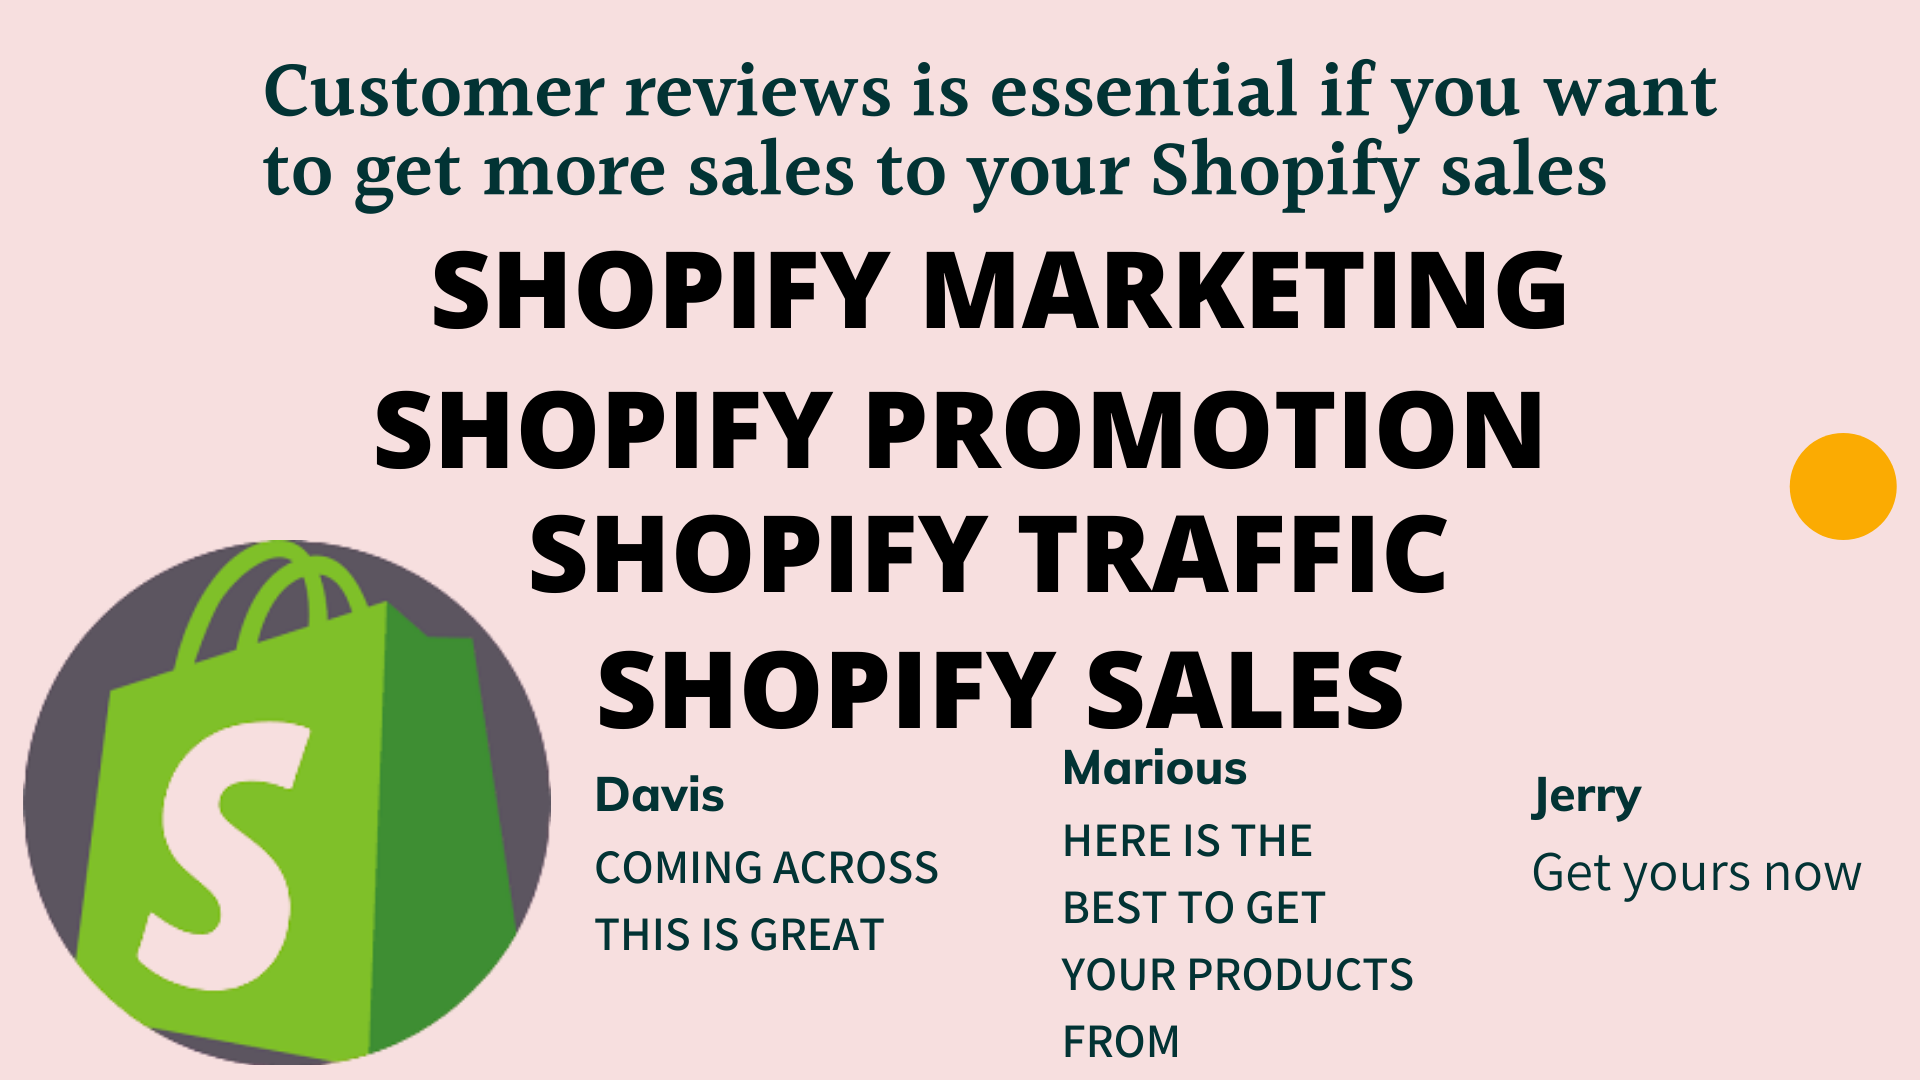 I will do shopify marketing promotion drive traffic for shopify sales, FiverrBox